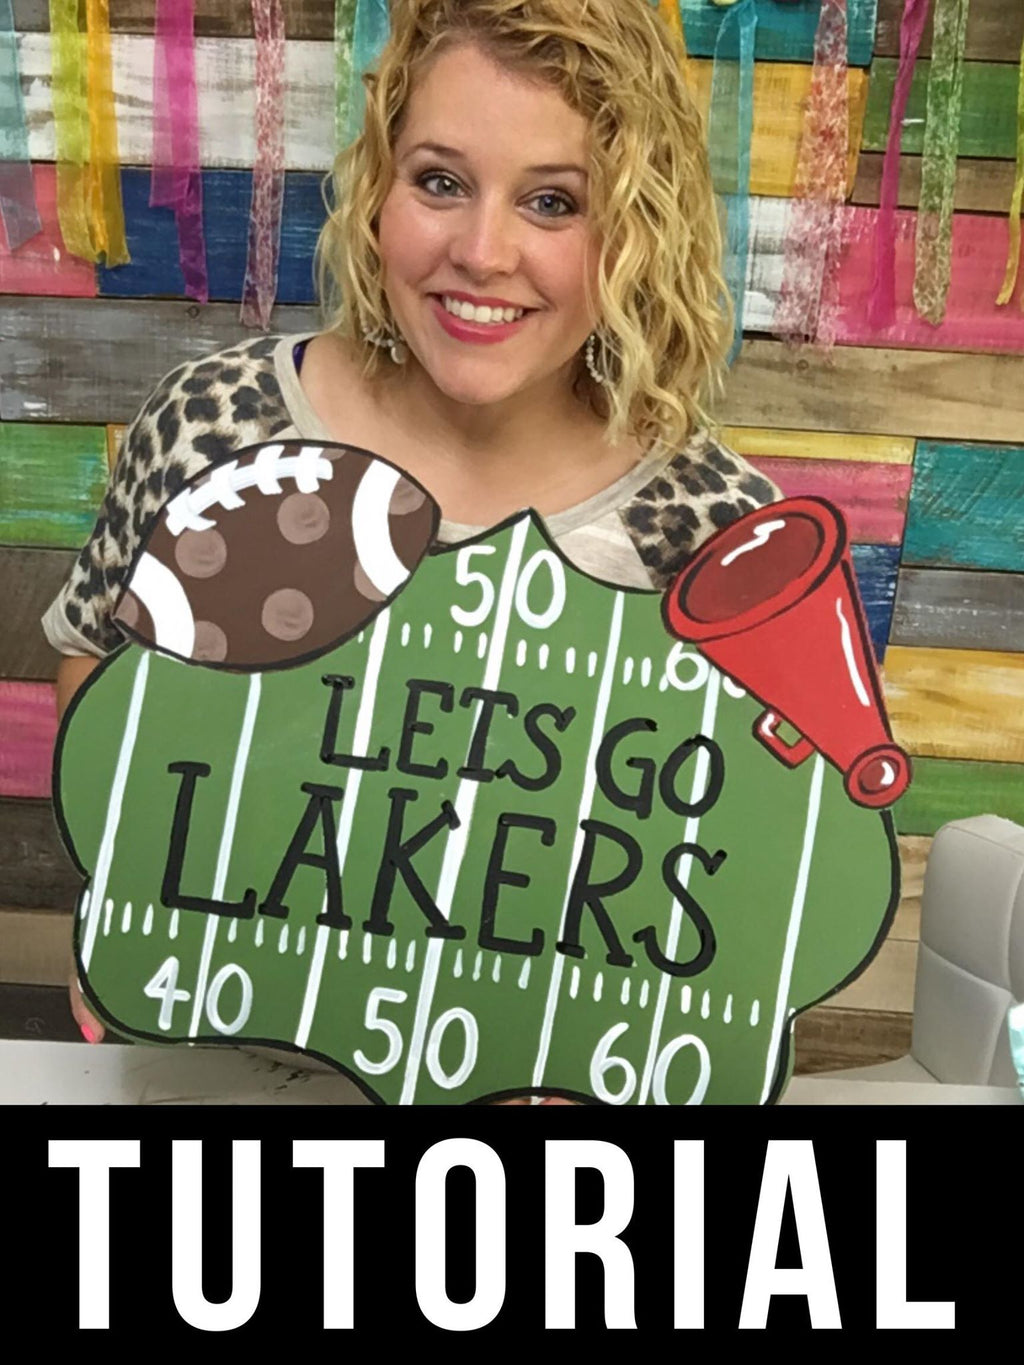 Football Sign Door Hanger - Instructional Video Tutorial